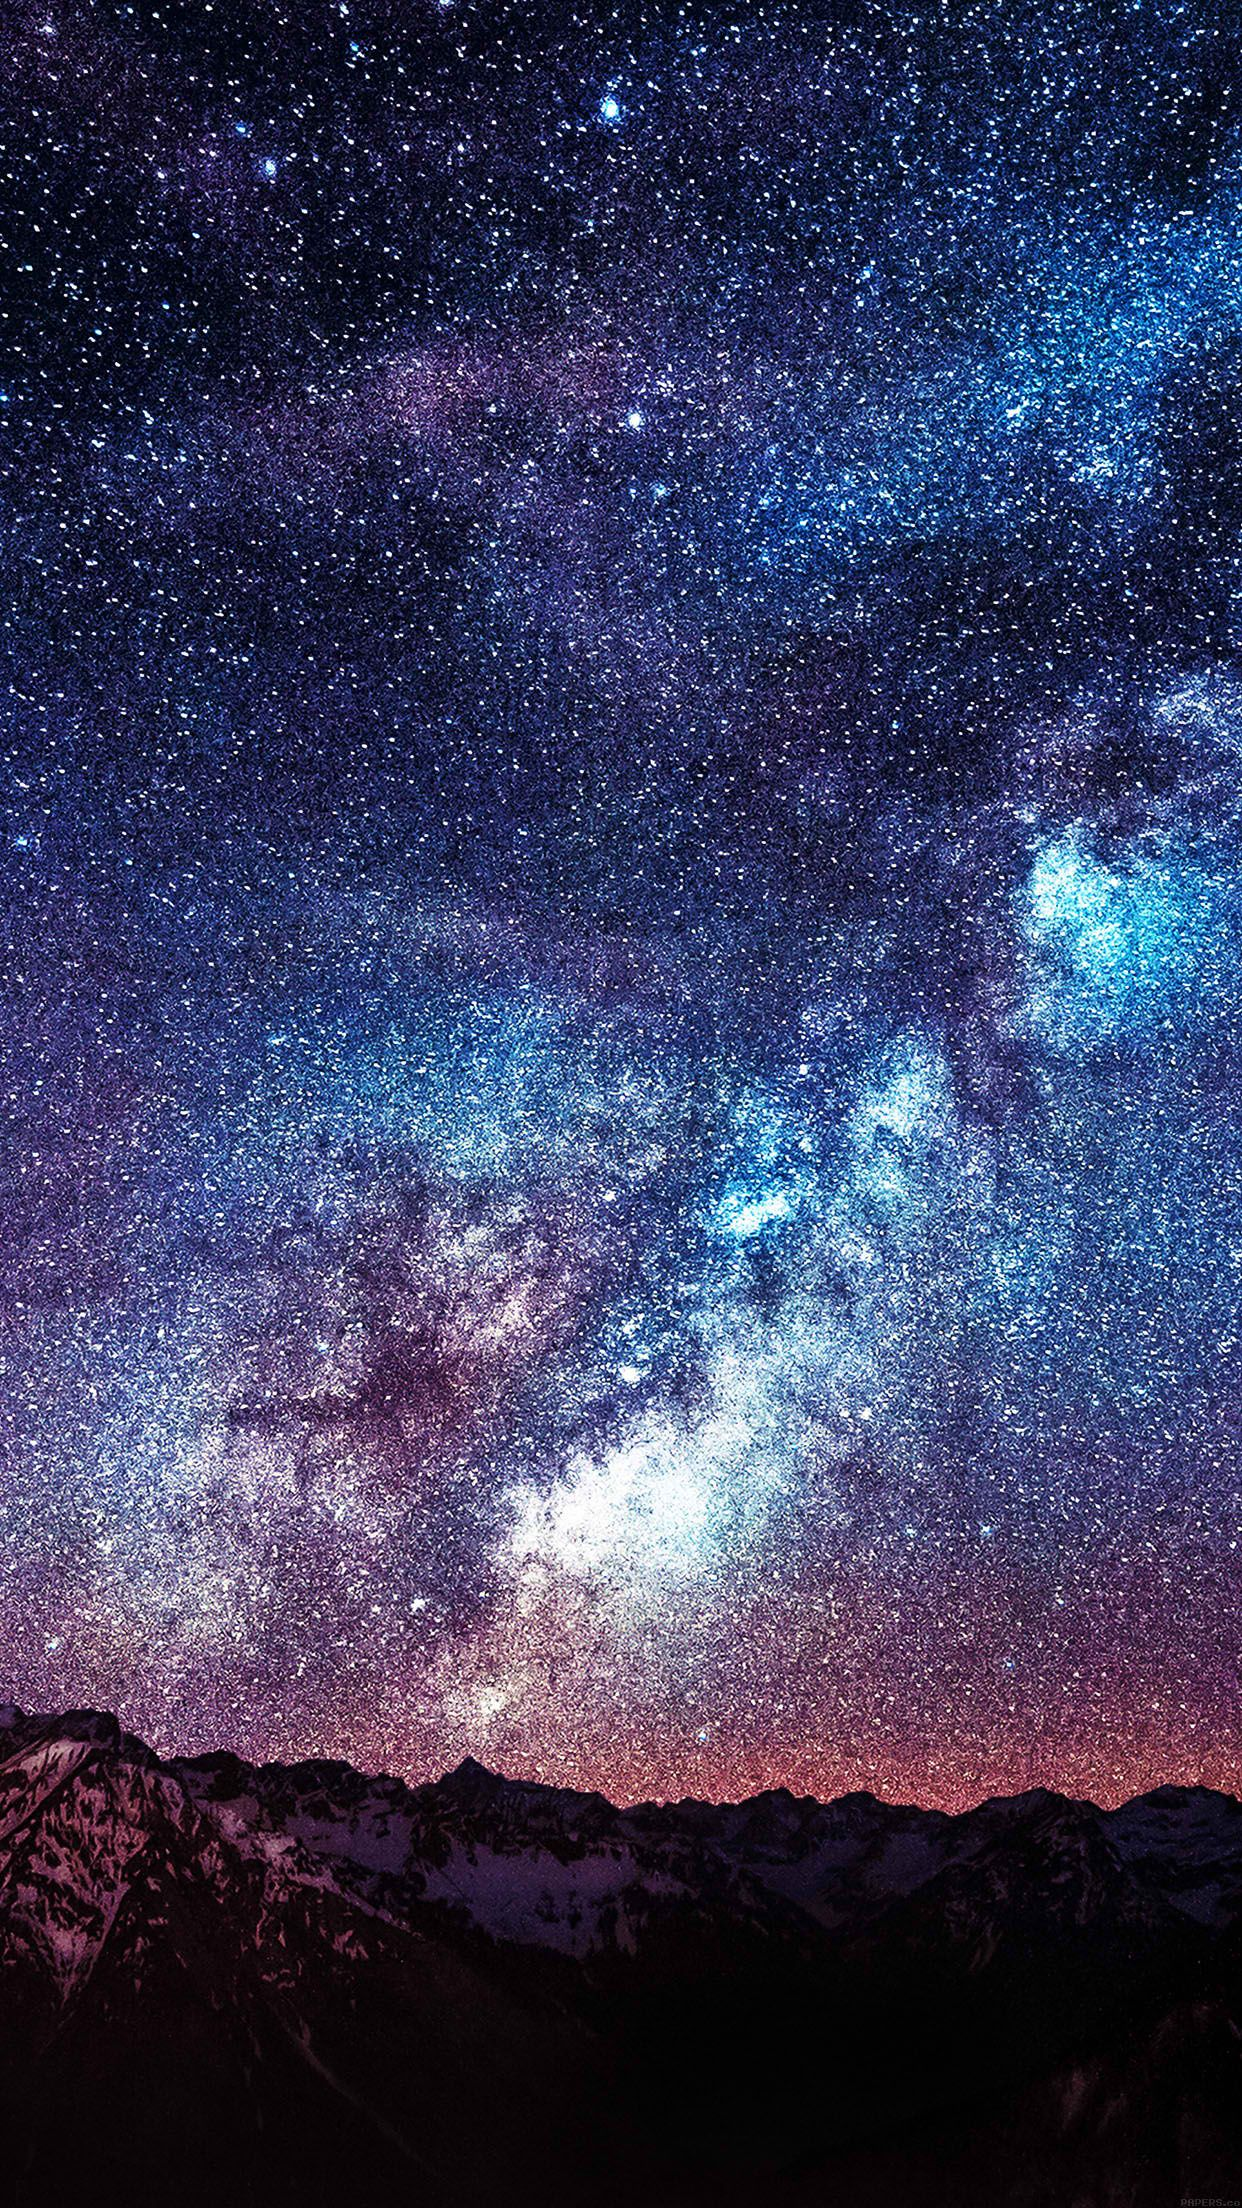 Install a Galaxy Wallpaper on Your iPhone – Change Your Phone's Theme